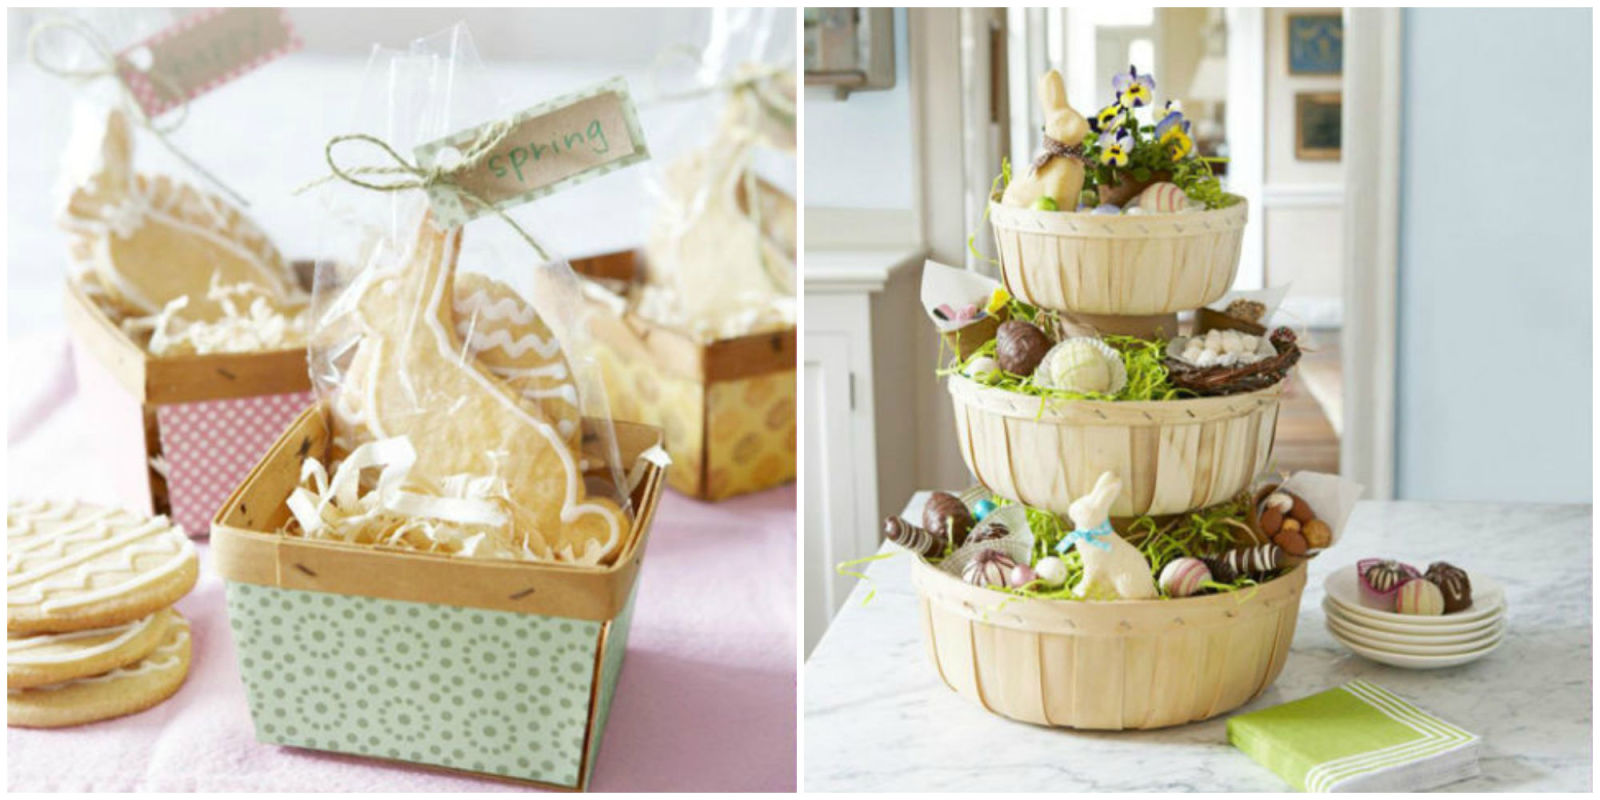 35 diy easter basket ideas unique homemade easter baskets good 35 diy easter basket ideas unique homemade easter baskets good housekeeping negle Images